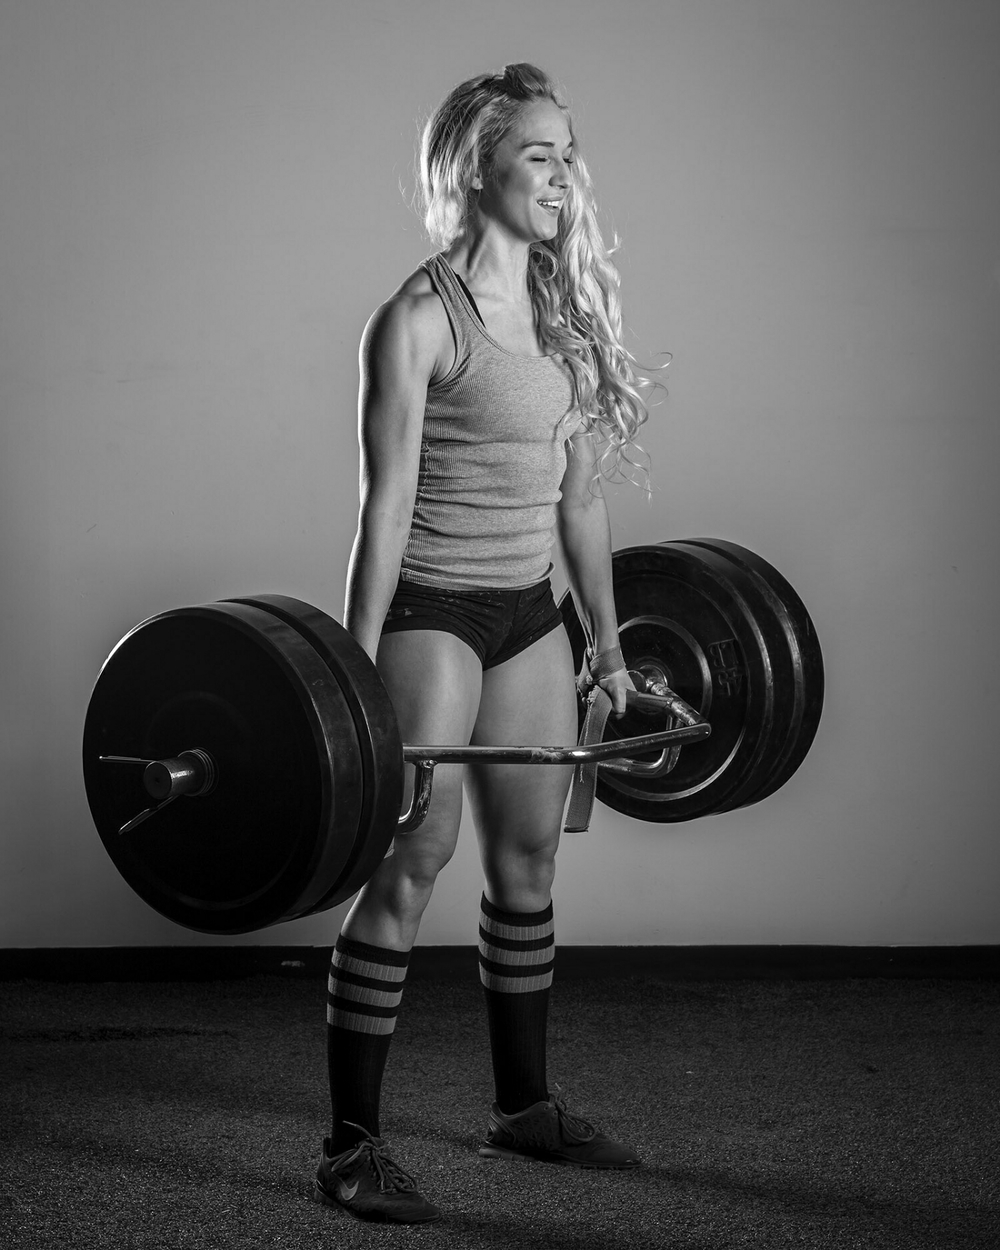 Chelsey deadlifting 225 for fun.